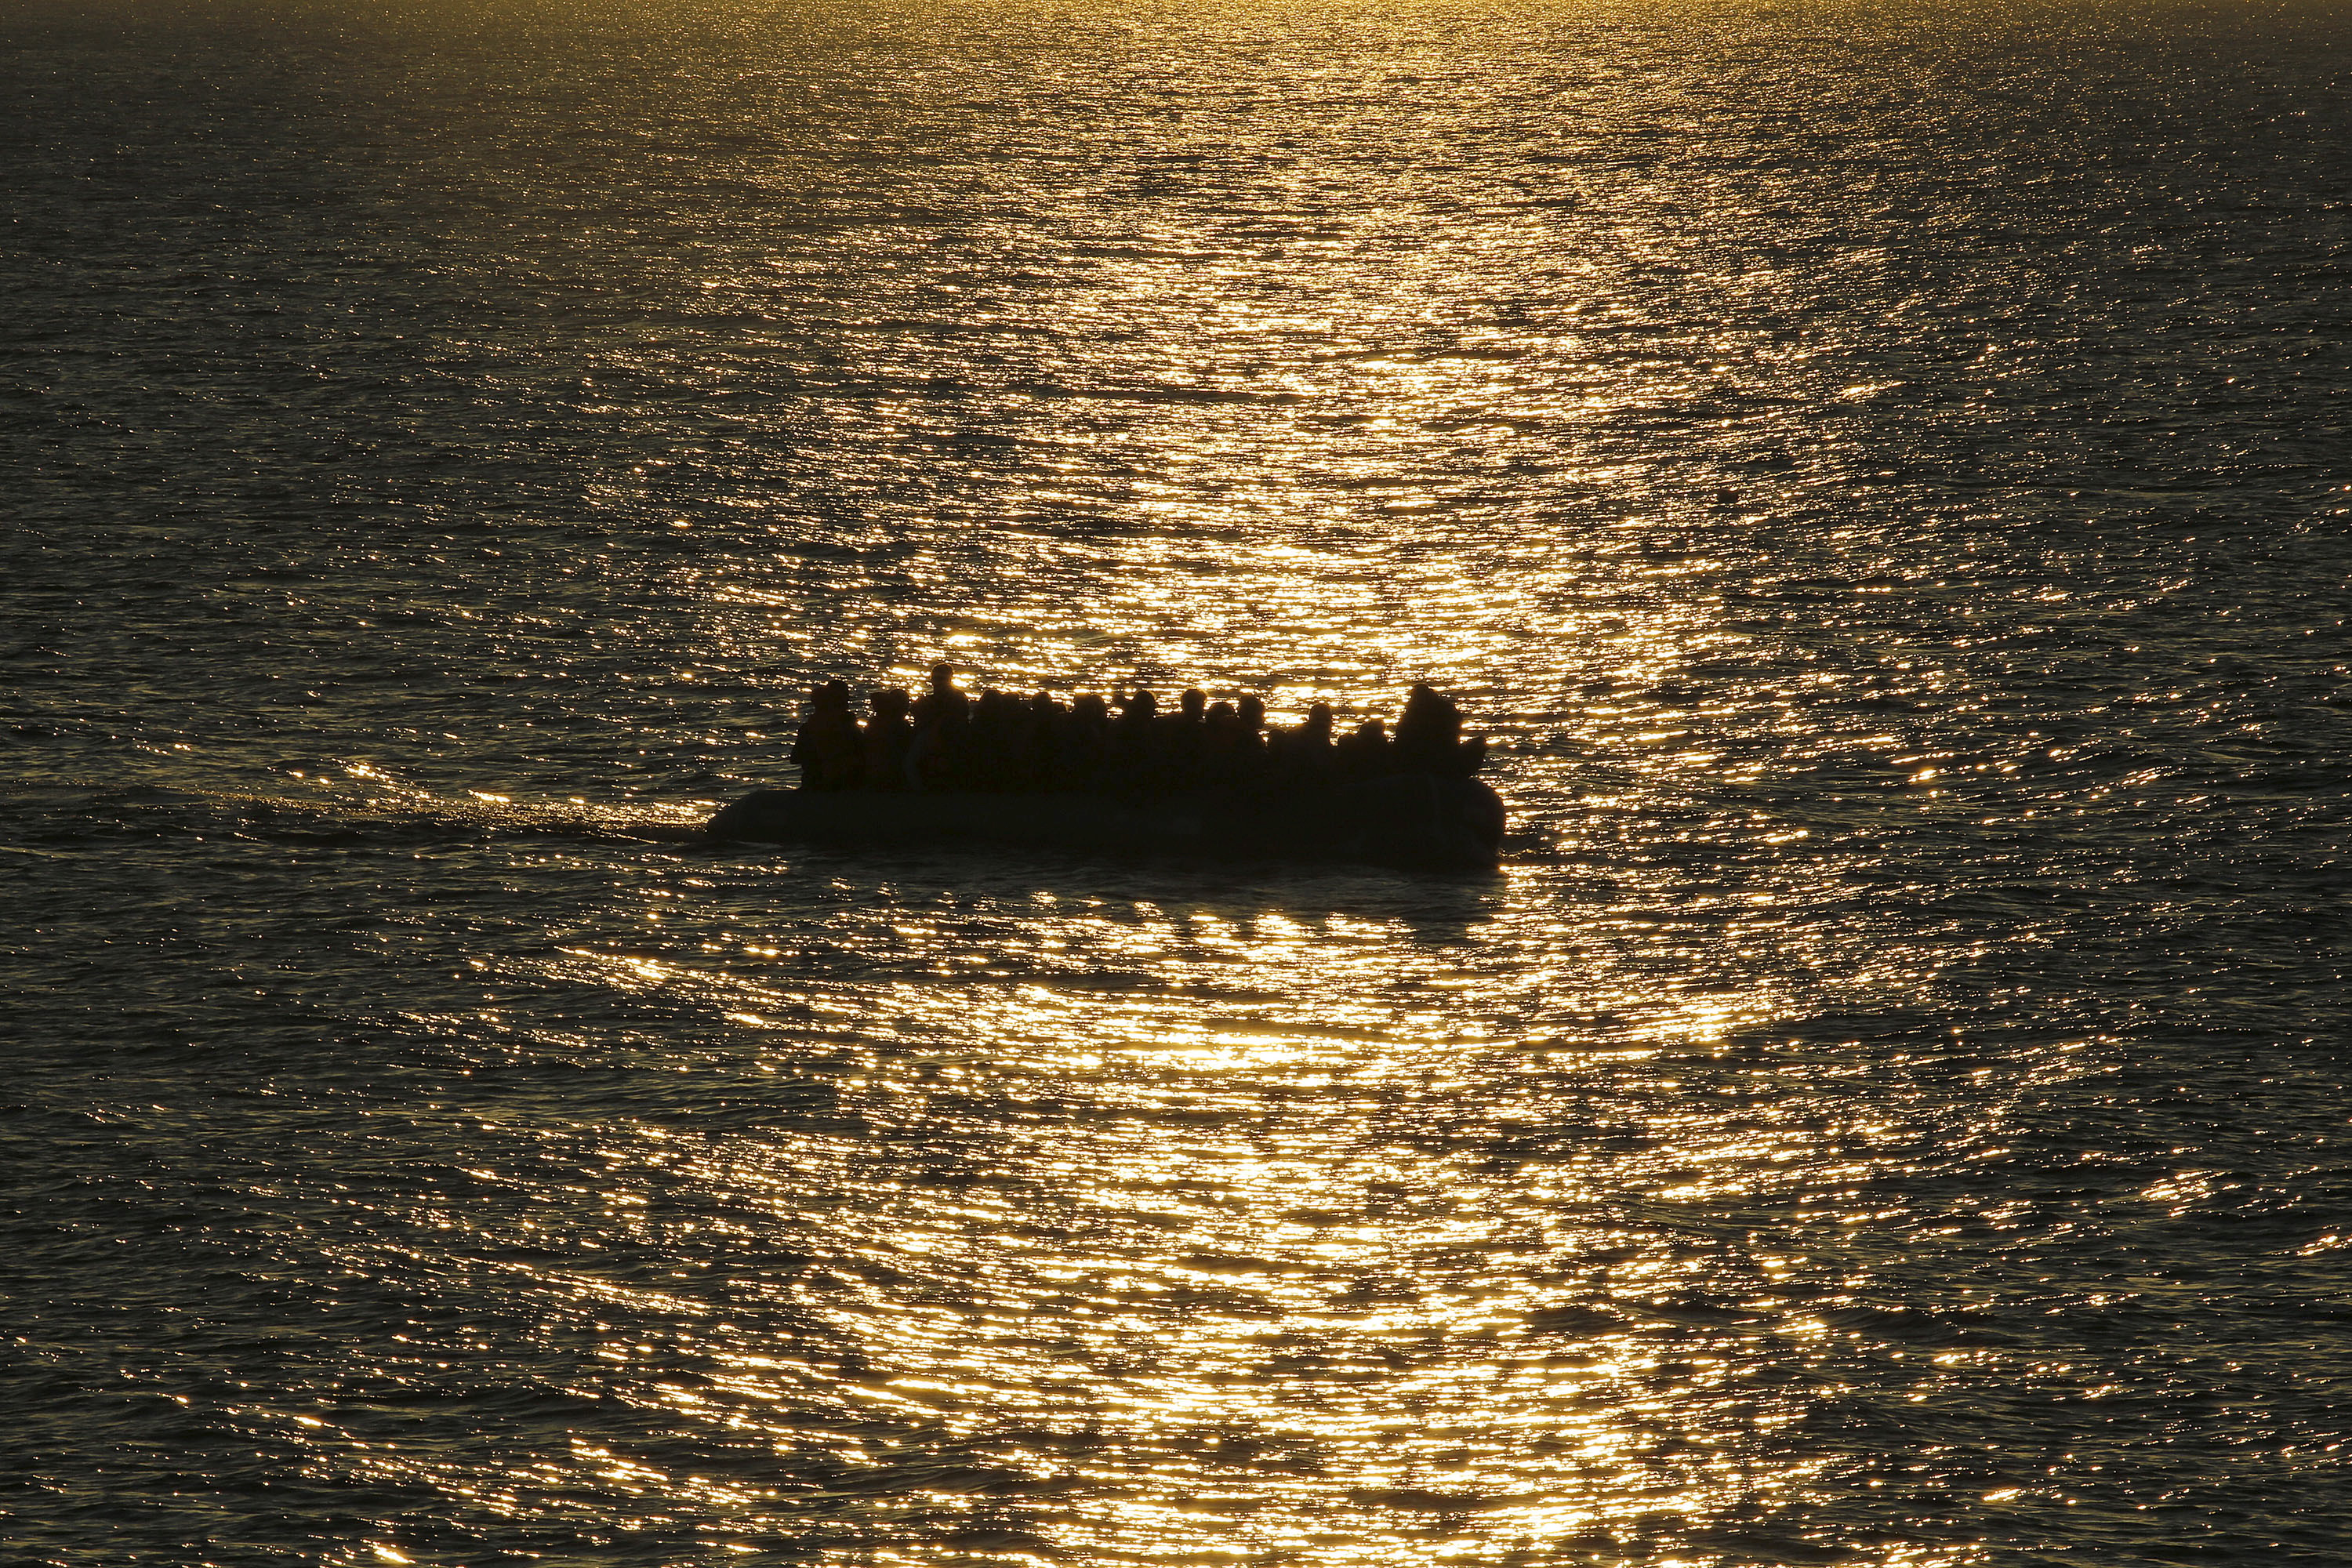 FILE - A raft overcrowded with migrants and refugees approaches a beach at dawn on the Greek island of Lesbos Nov. 17, 2015. (Reuters)